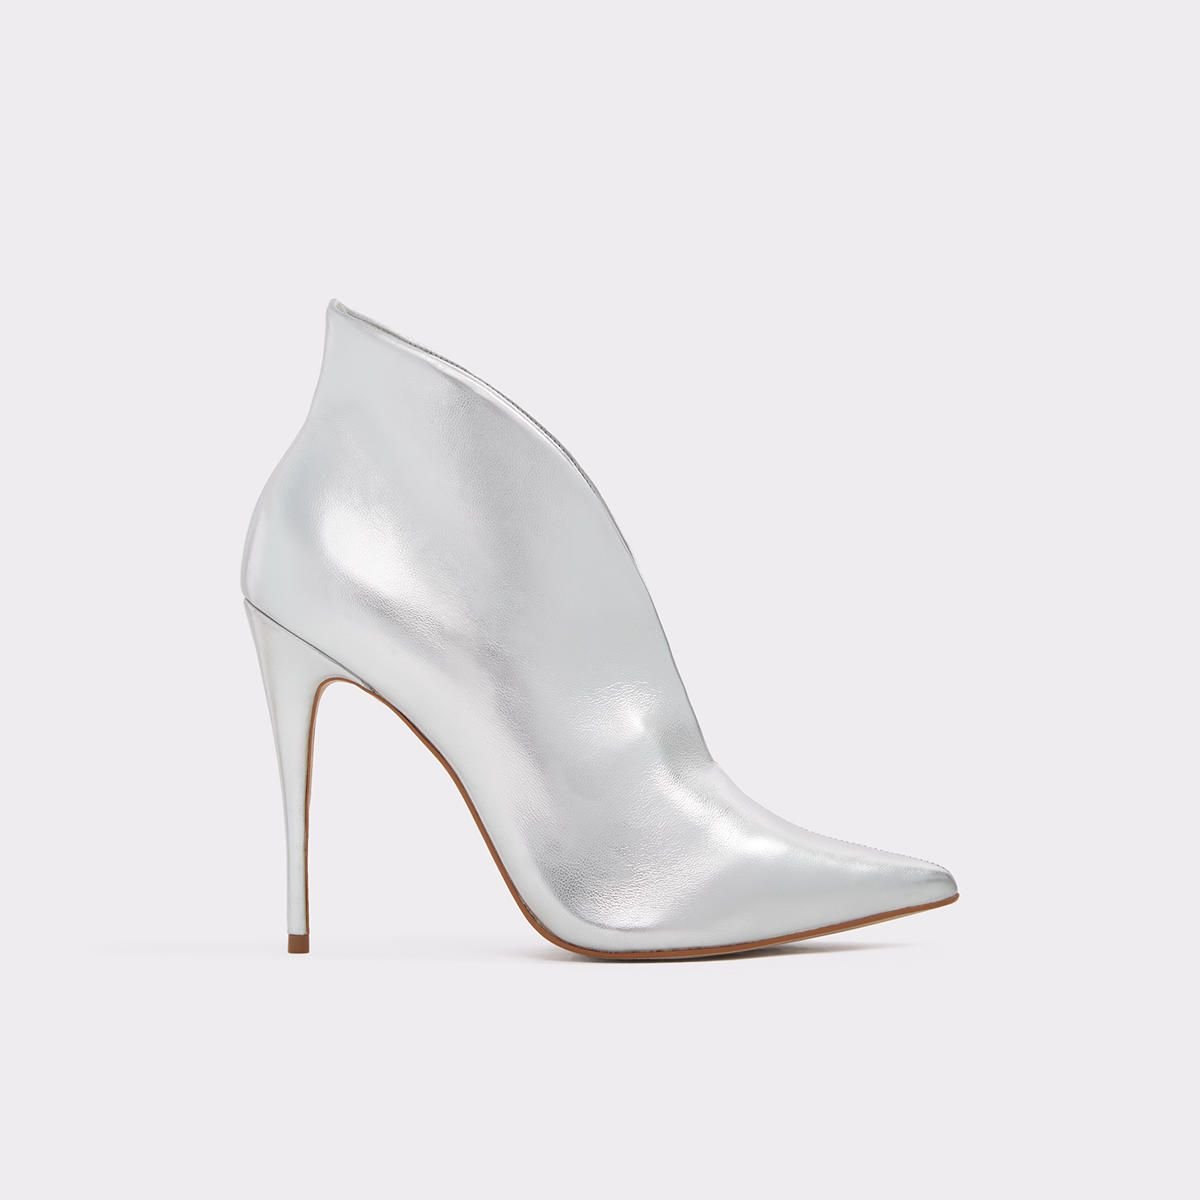 a2b629fcfb4 Melidith Them leather high heel shoes tho. Nail your meeting with these  sexy pointed-toe stiletto heels. Easy to slip on